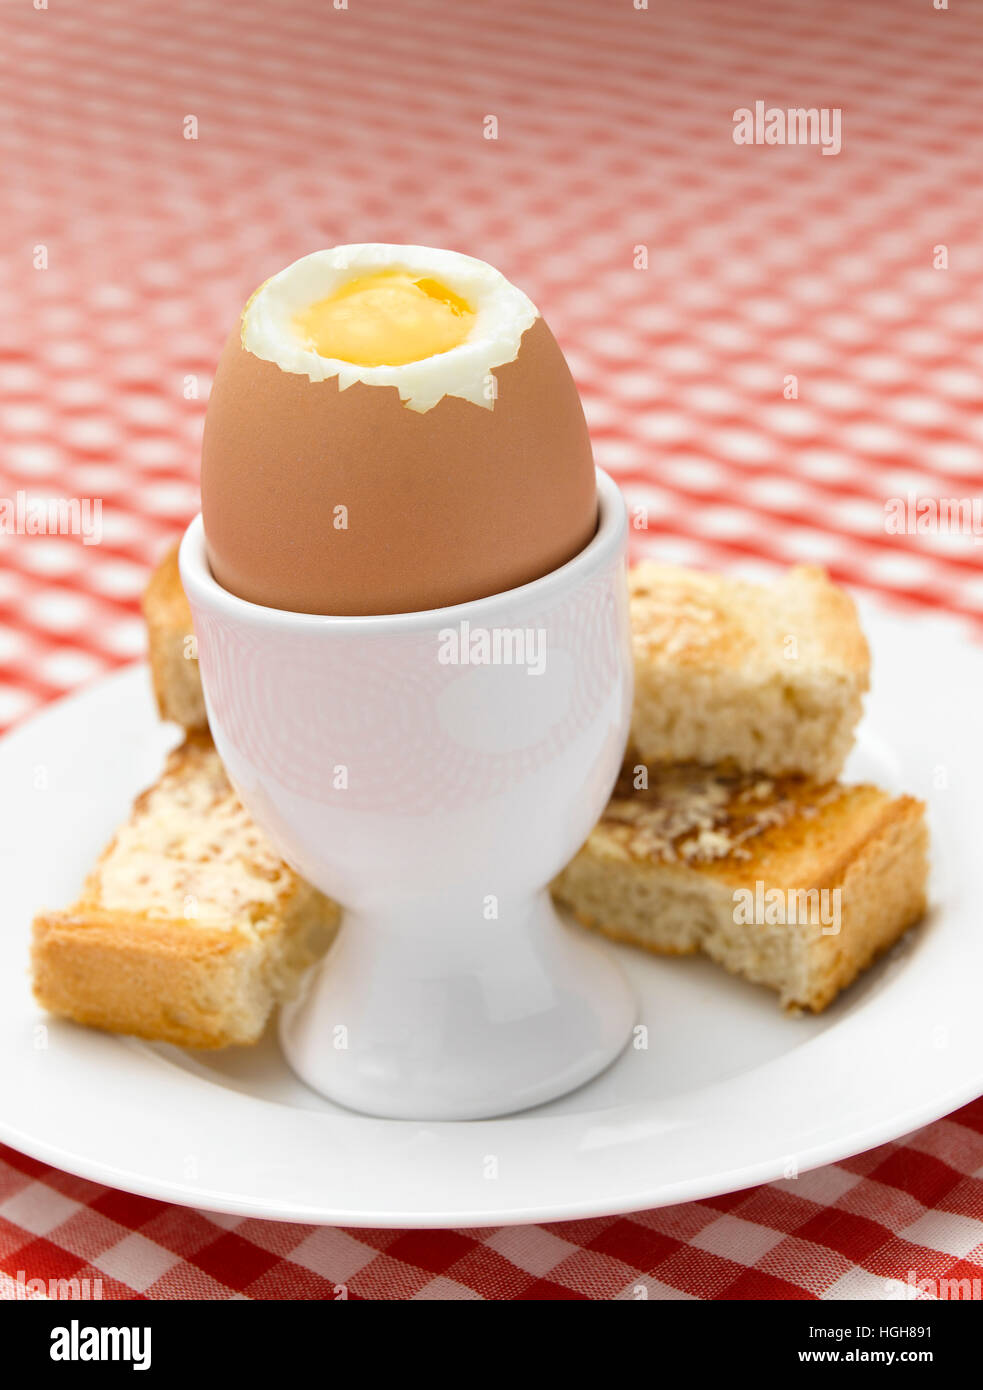 Boiled Egg on Gingham tablecloth - Stock Image